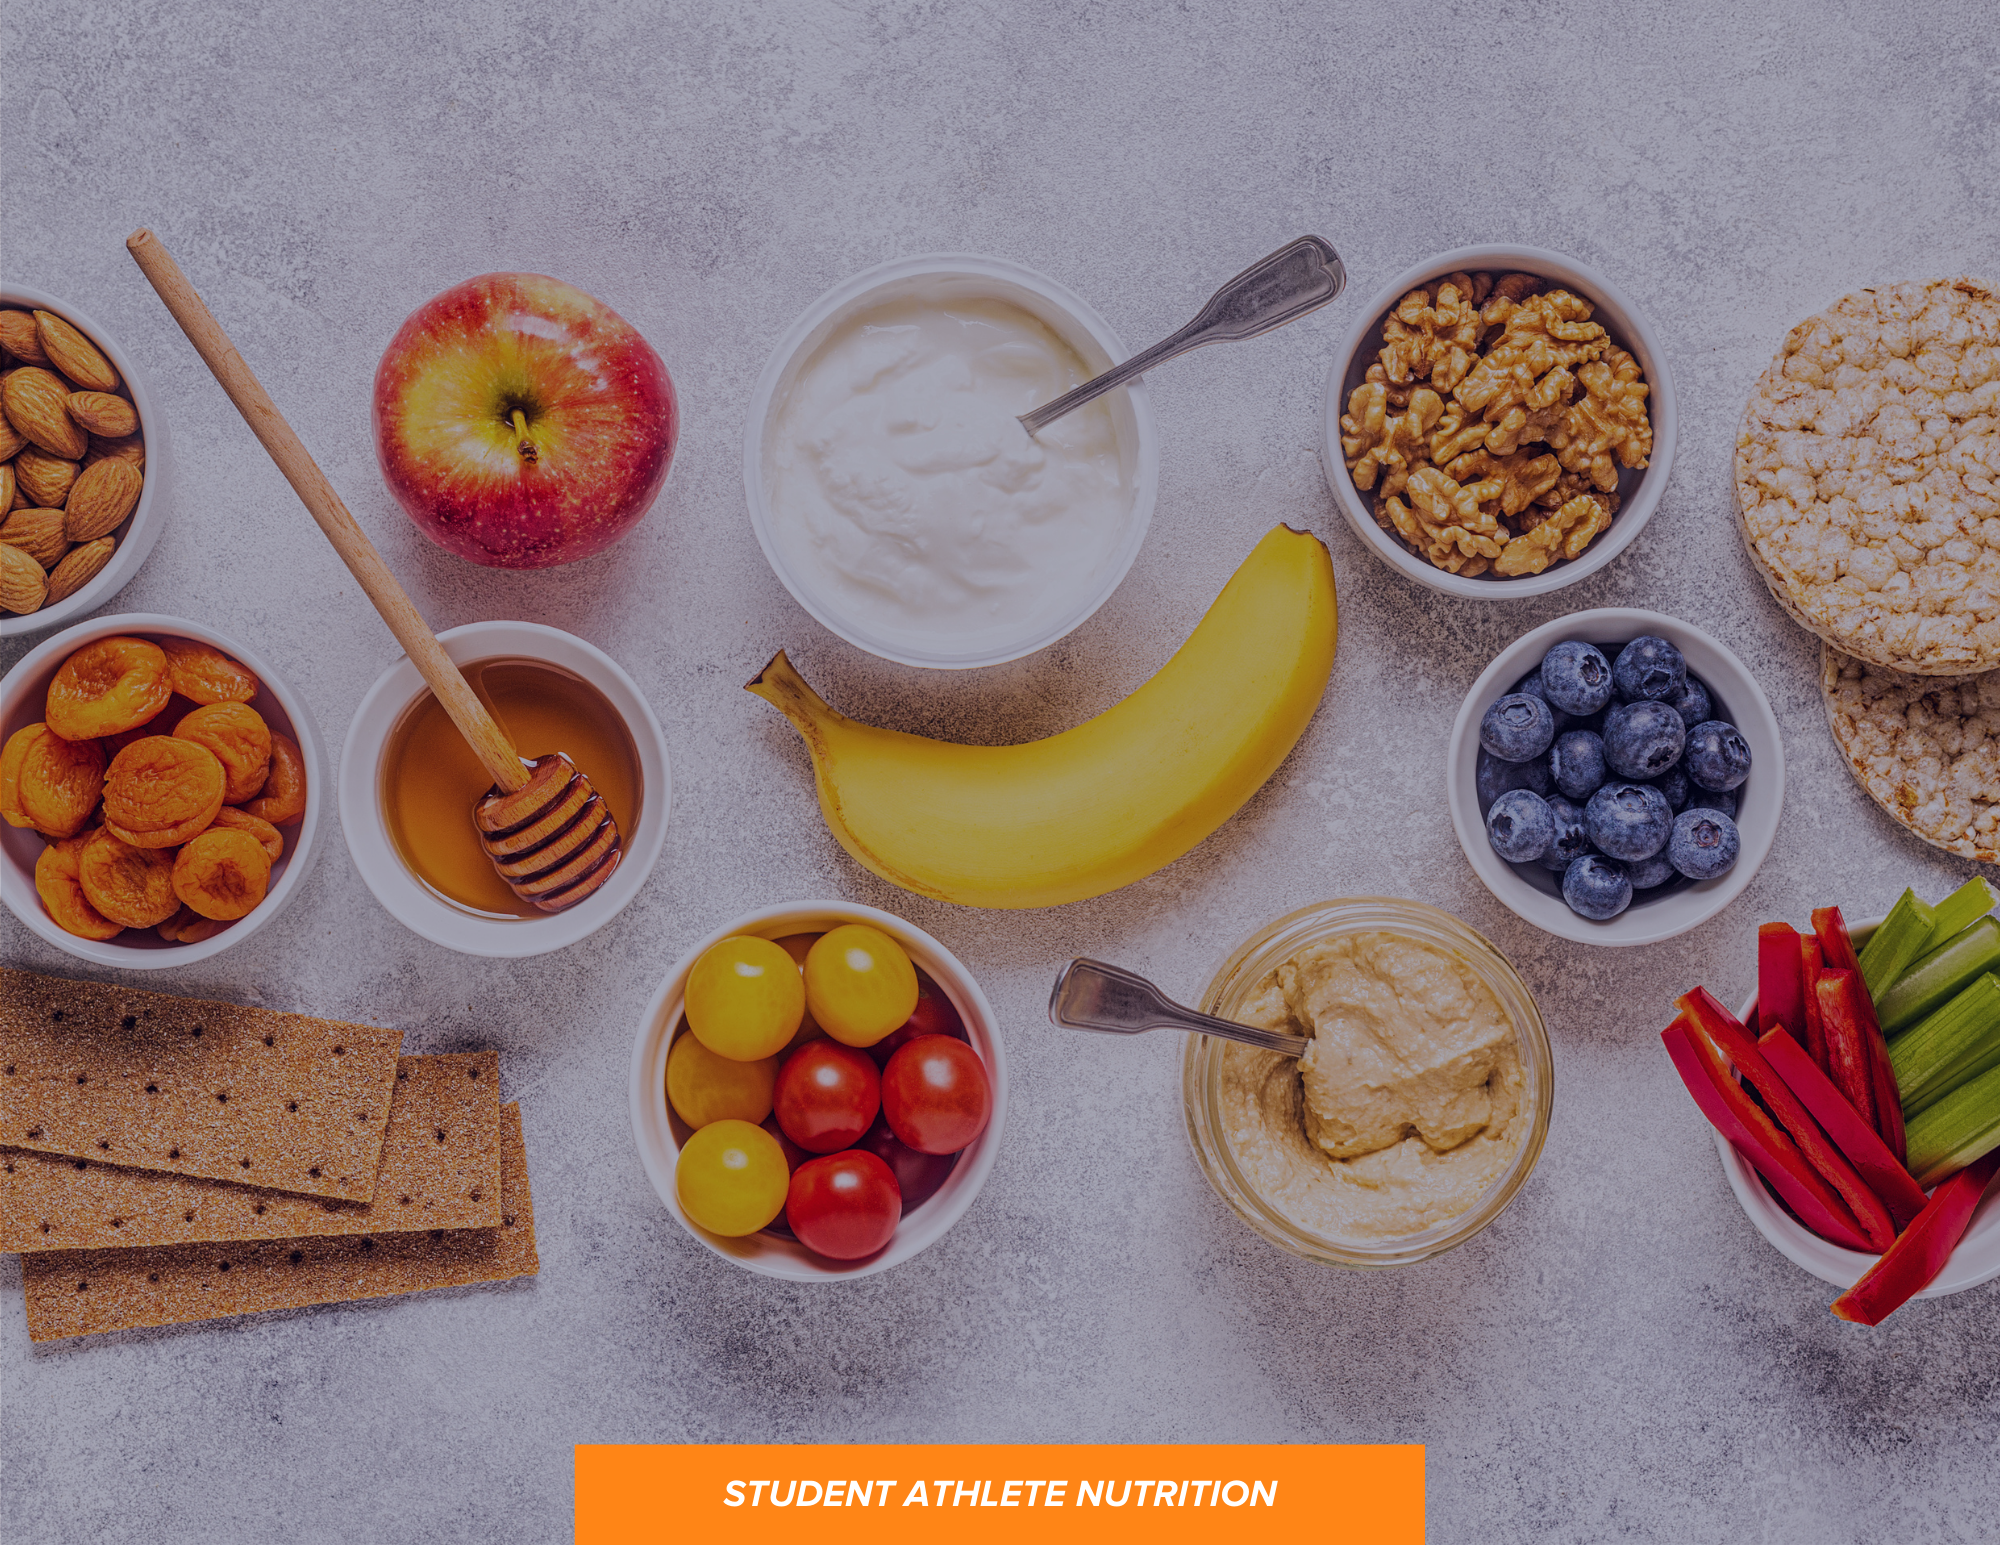 healthy snacks for athletes